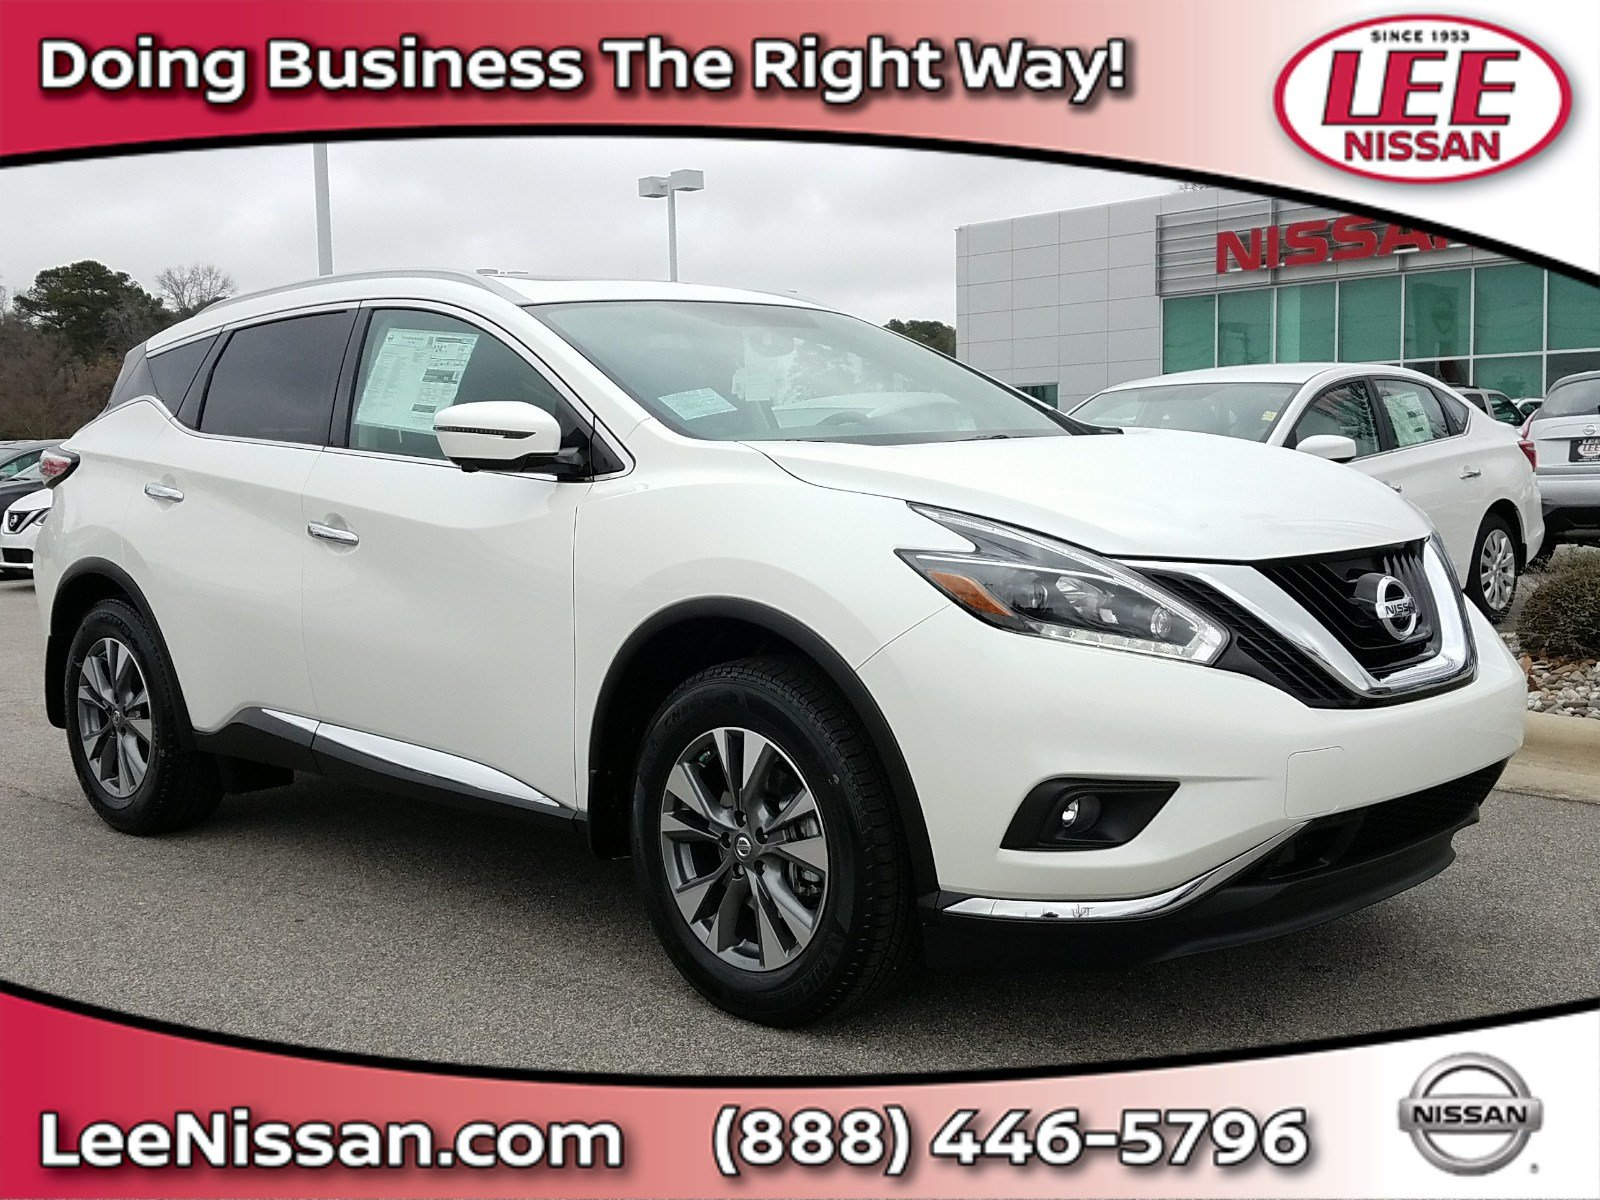 2018 Nissan Murano SL FWD SL for sale in Wilson, NC.